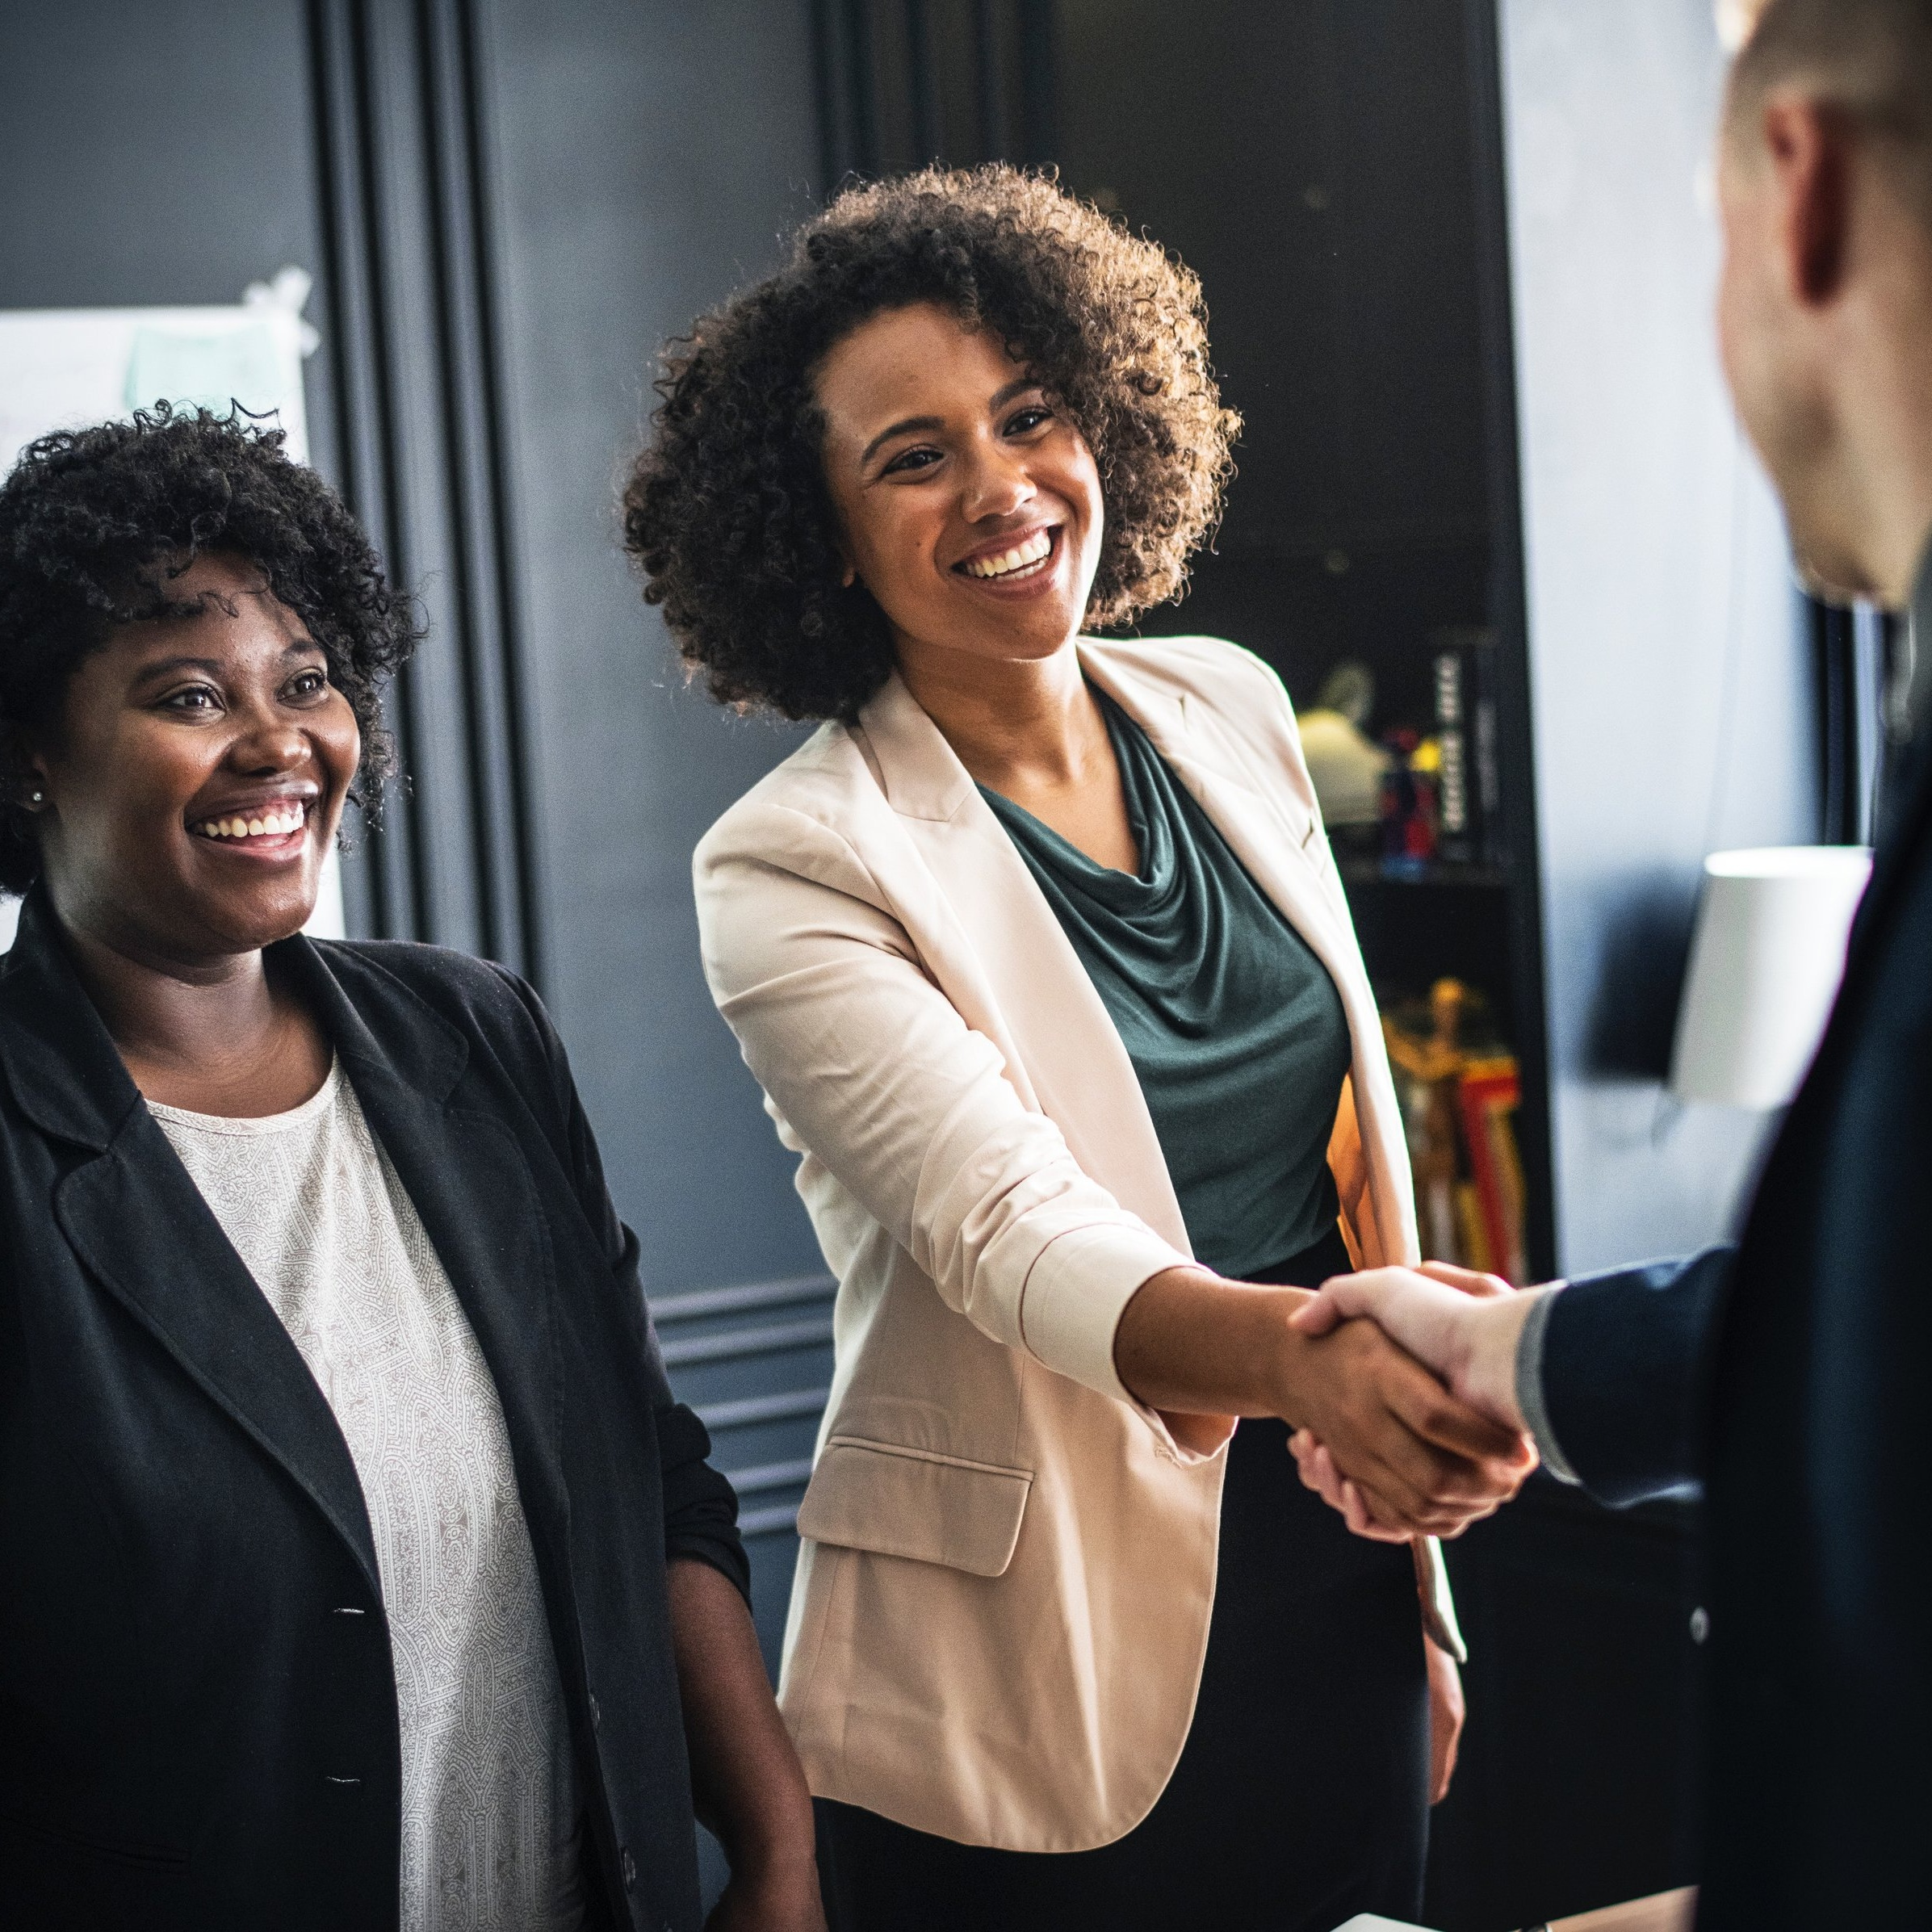 are you in need of a referral? - We can give you expert referrals to a trusted Realtor colleague. The Mavins Group is ready to help with efficiency and compassion.